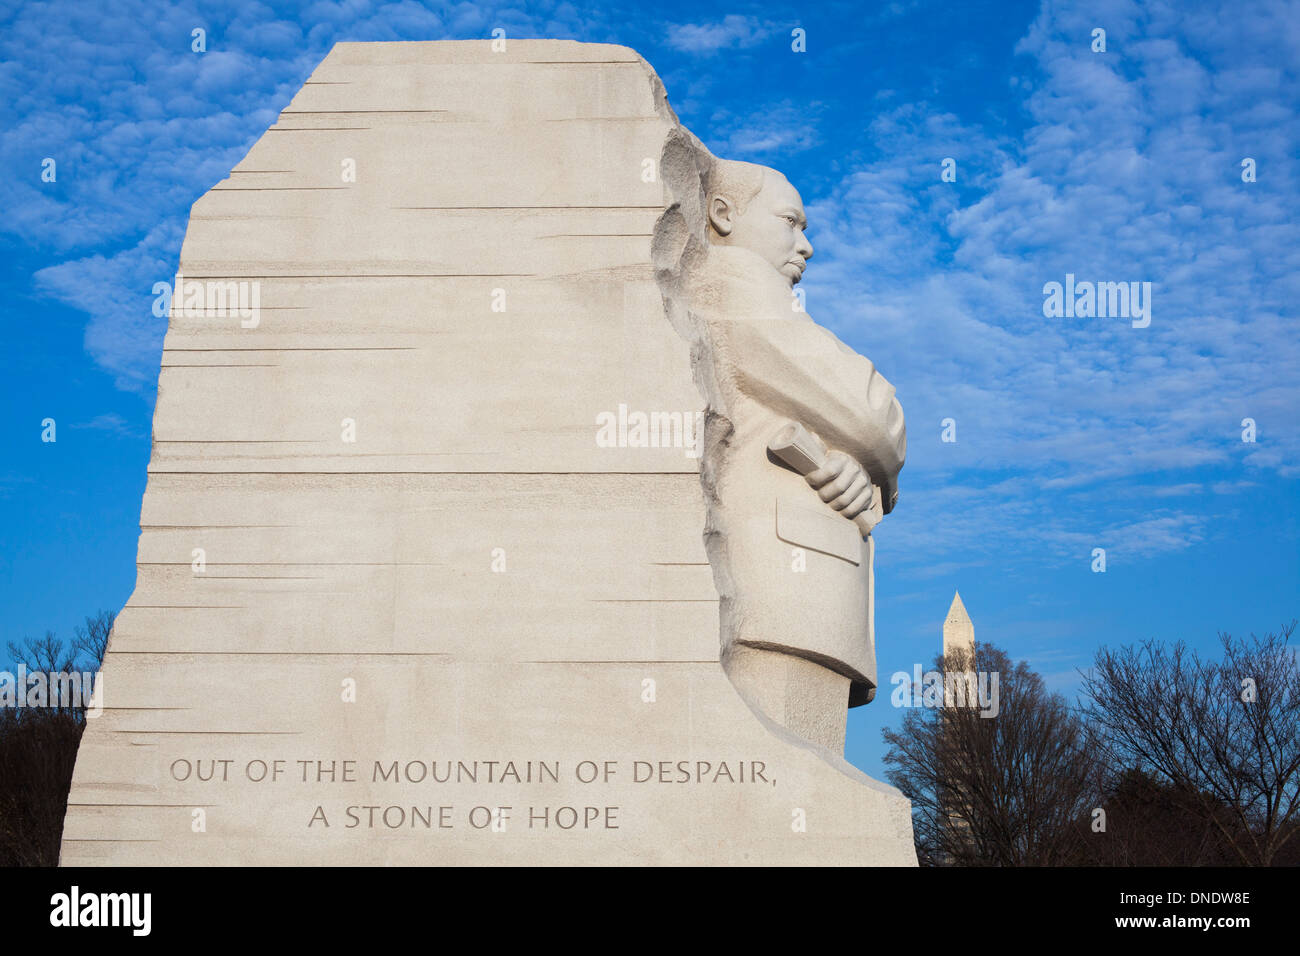 Washington, DC - The Martin Luther King Jr. Memorial. - Stock Image